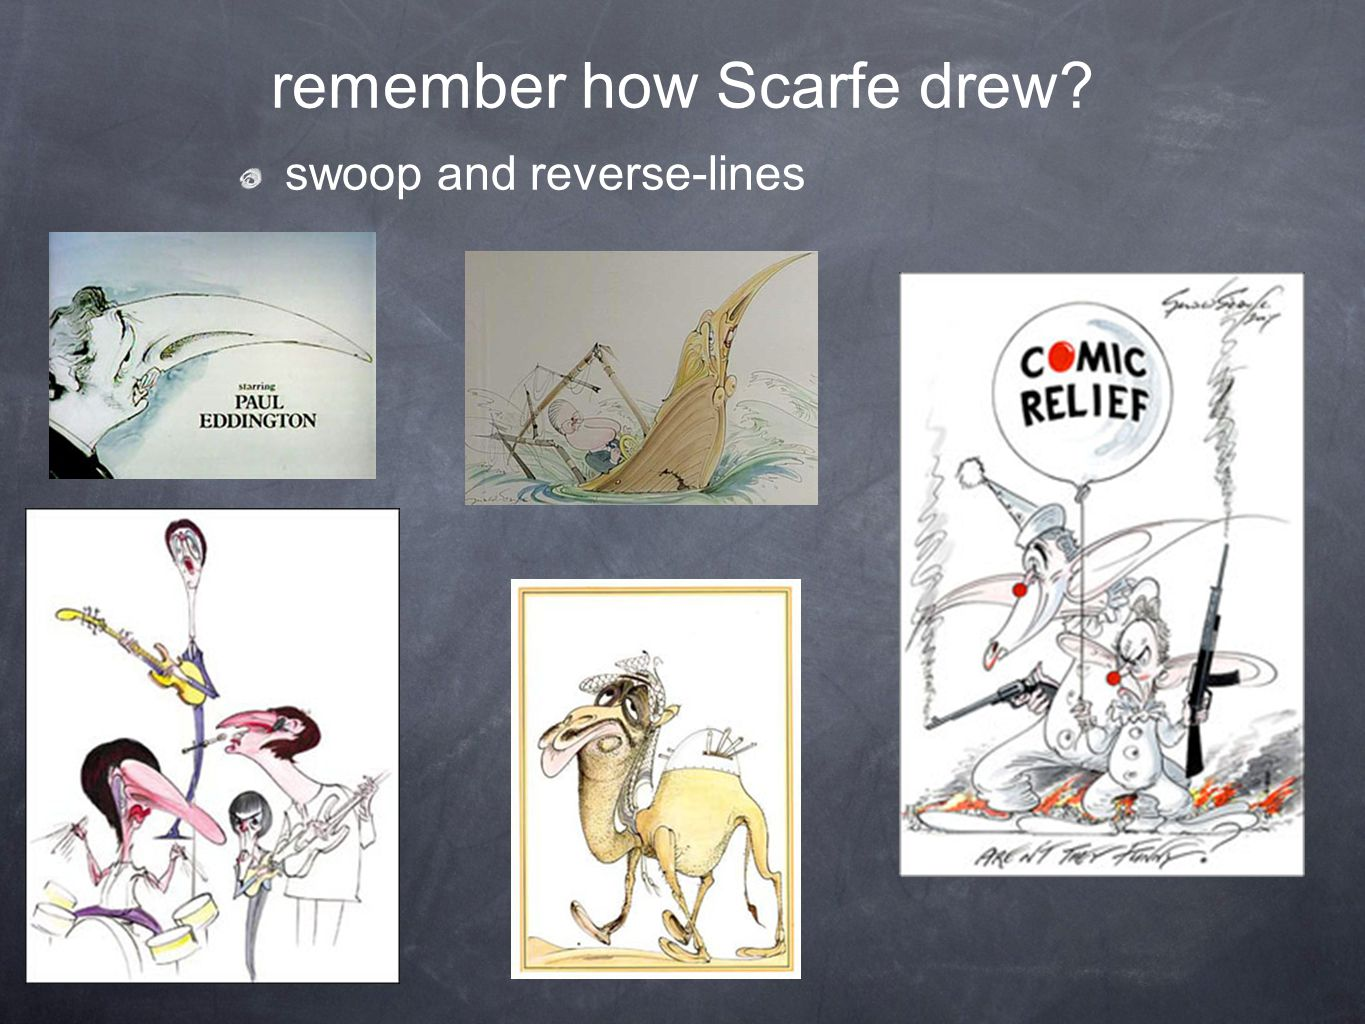 remember how Scarfe drew? swoop and reverse-lines